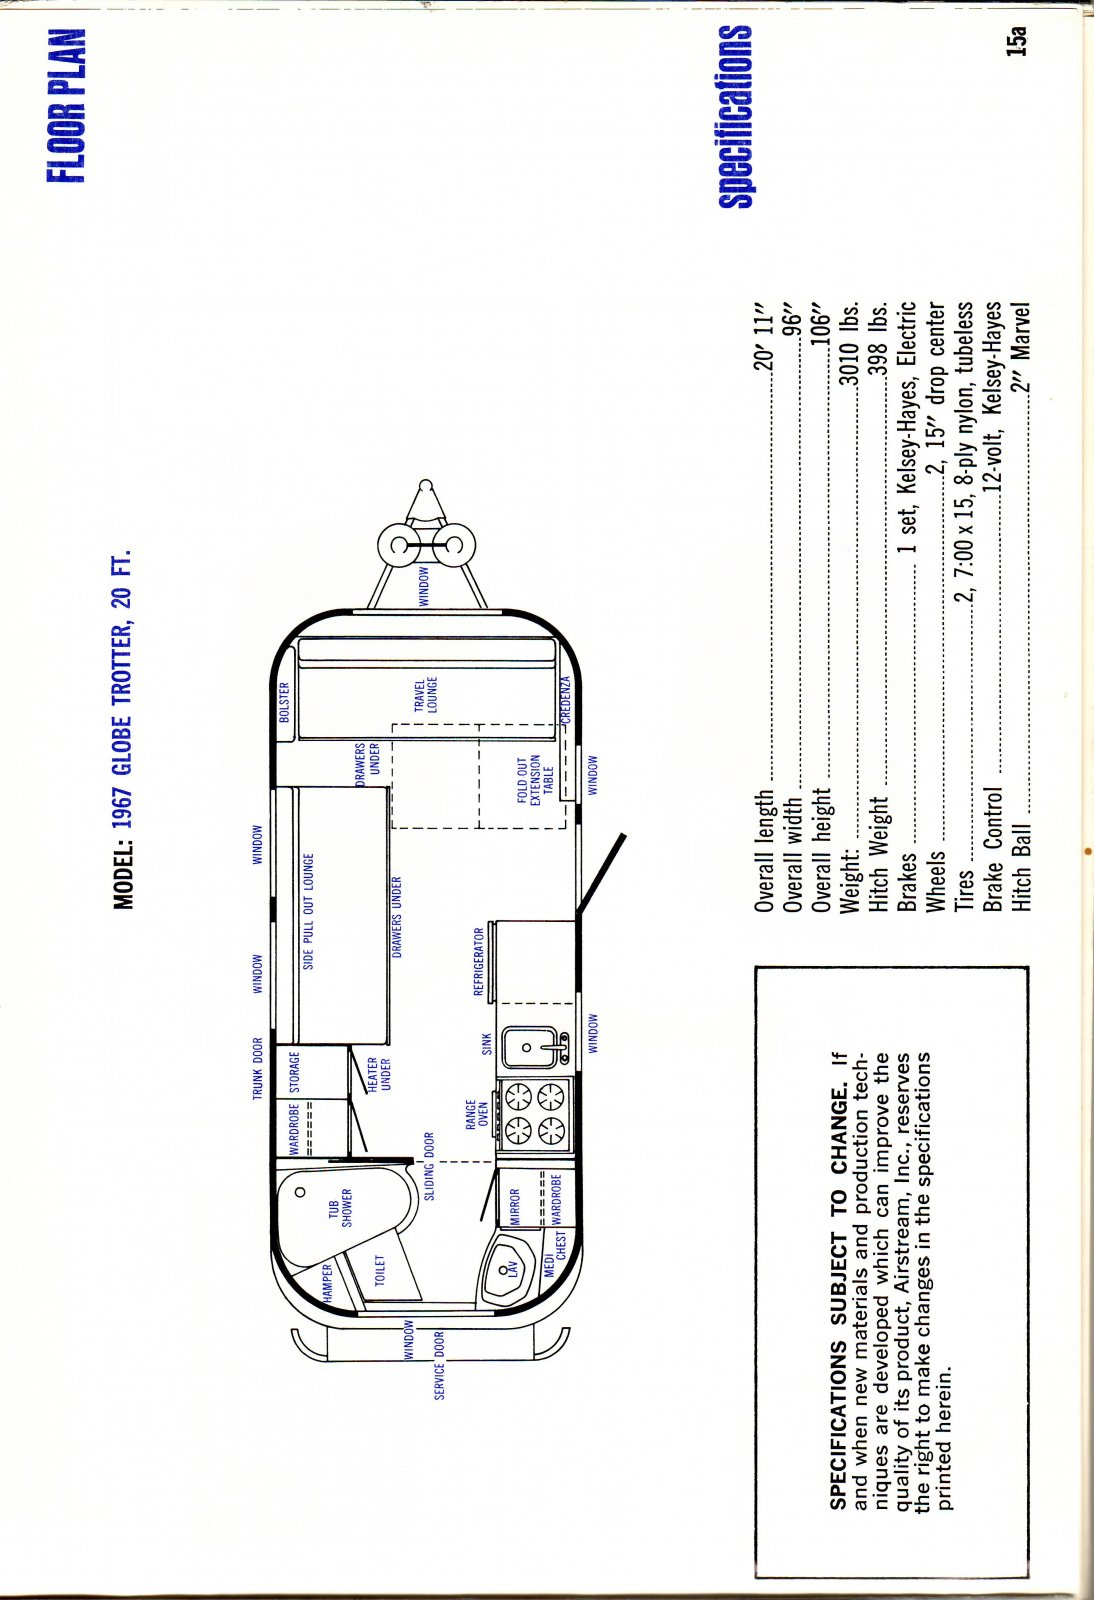 Click image for larger version  Name:Airstream manual 15bb.jpg Views:114 Size:202.1 KB ID:77477